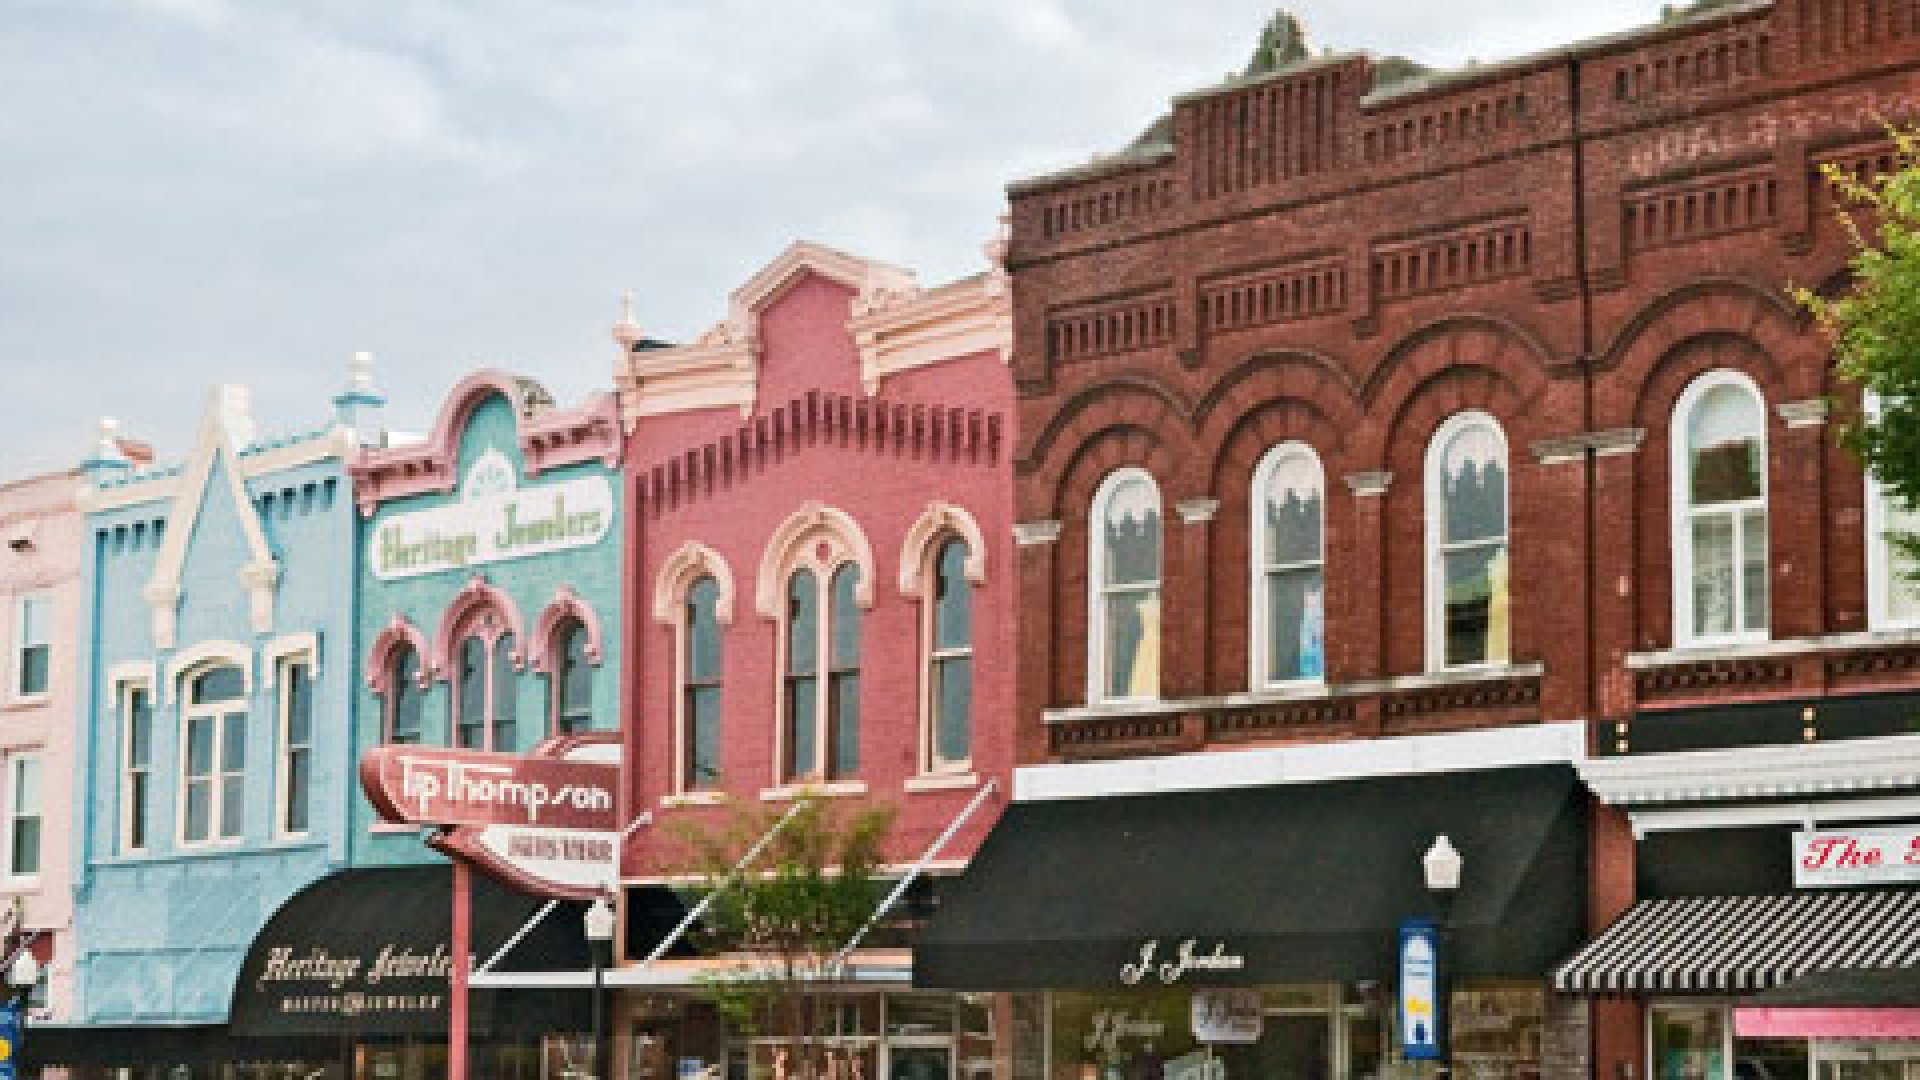 Small businesses line the street in Public Square East, Shelbyville, Tennessee.